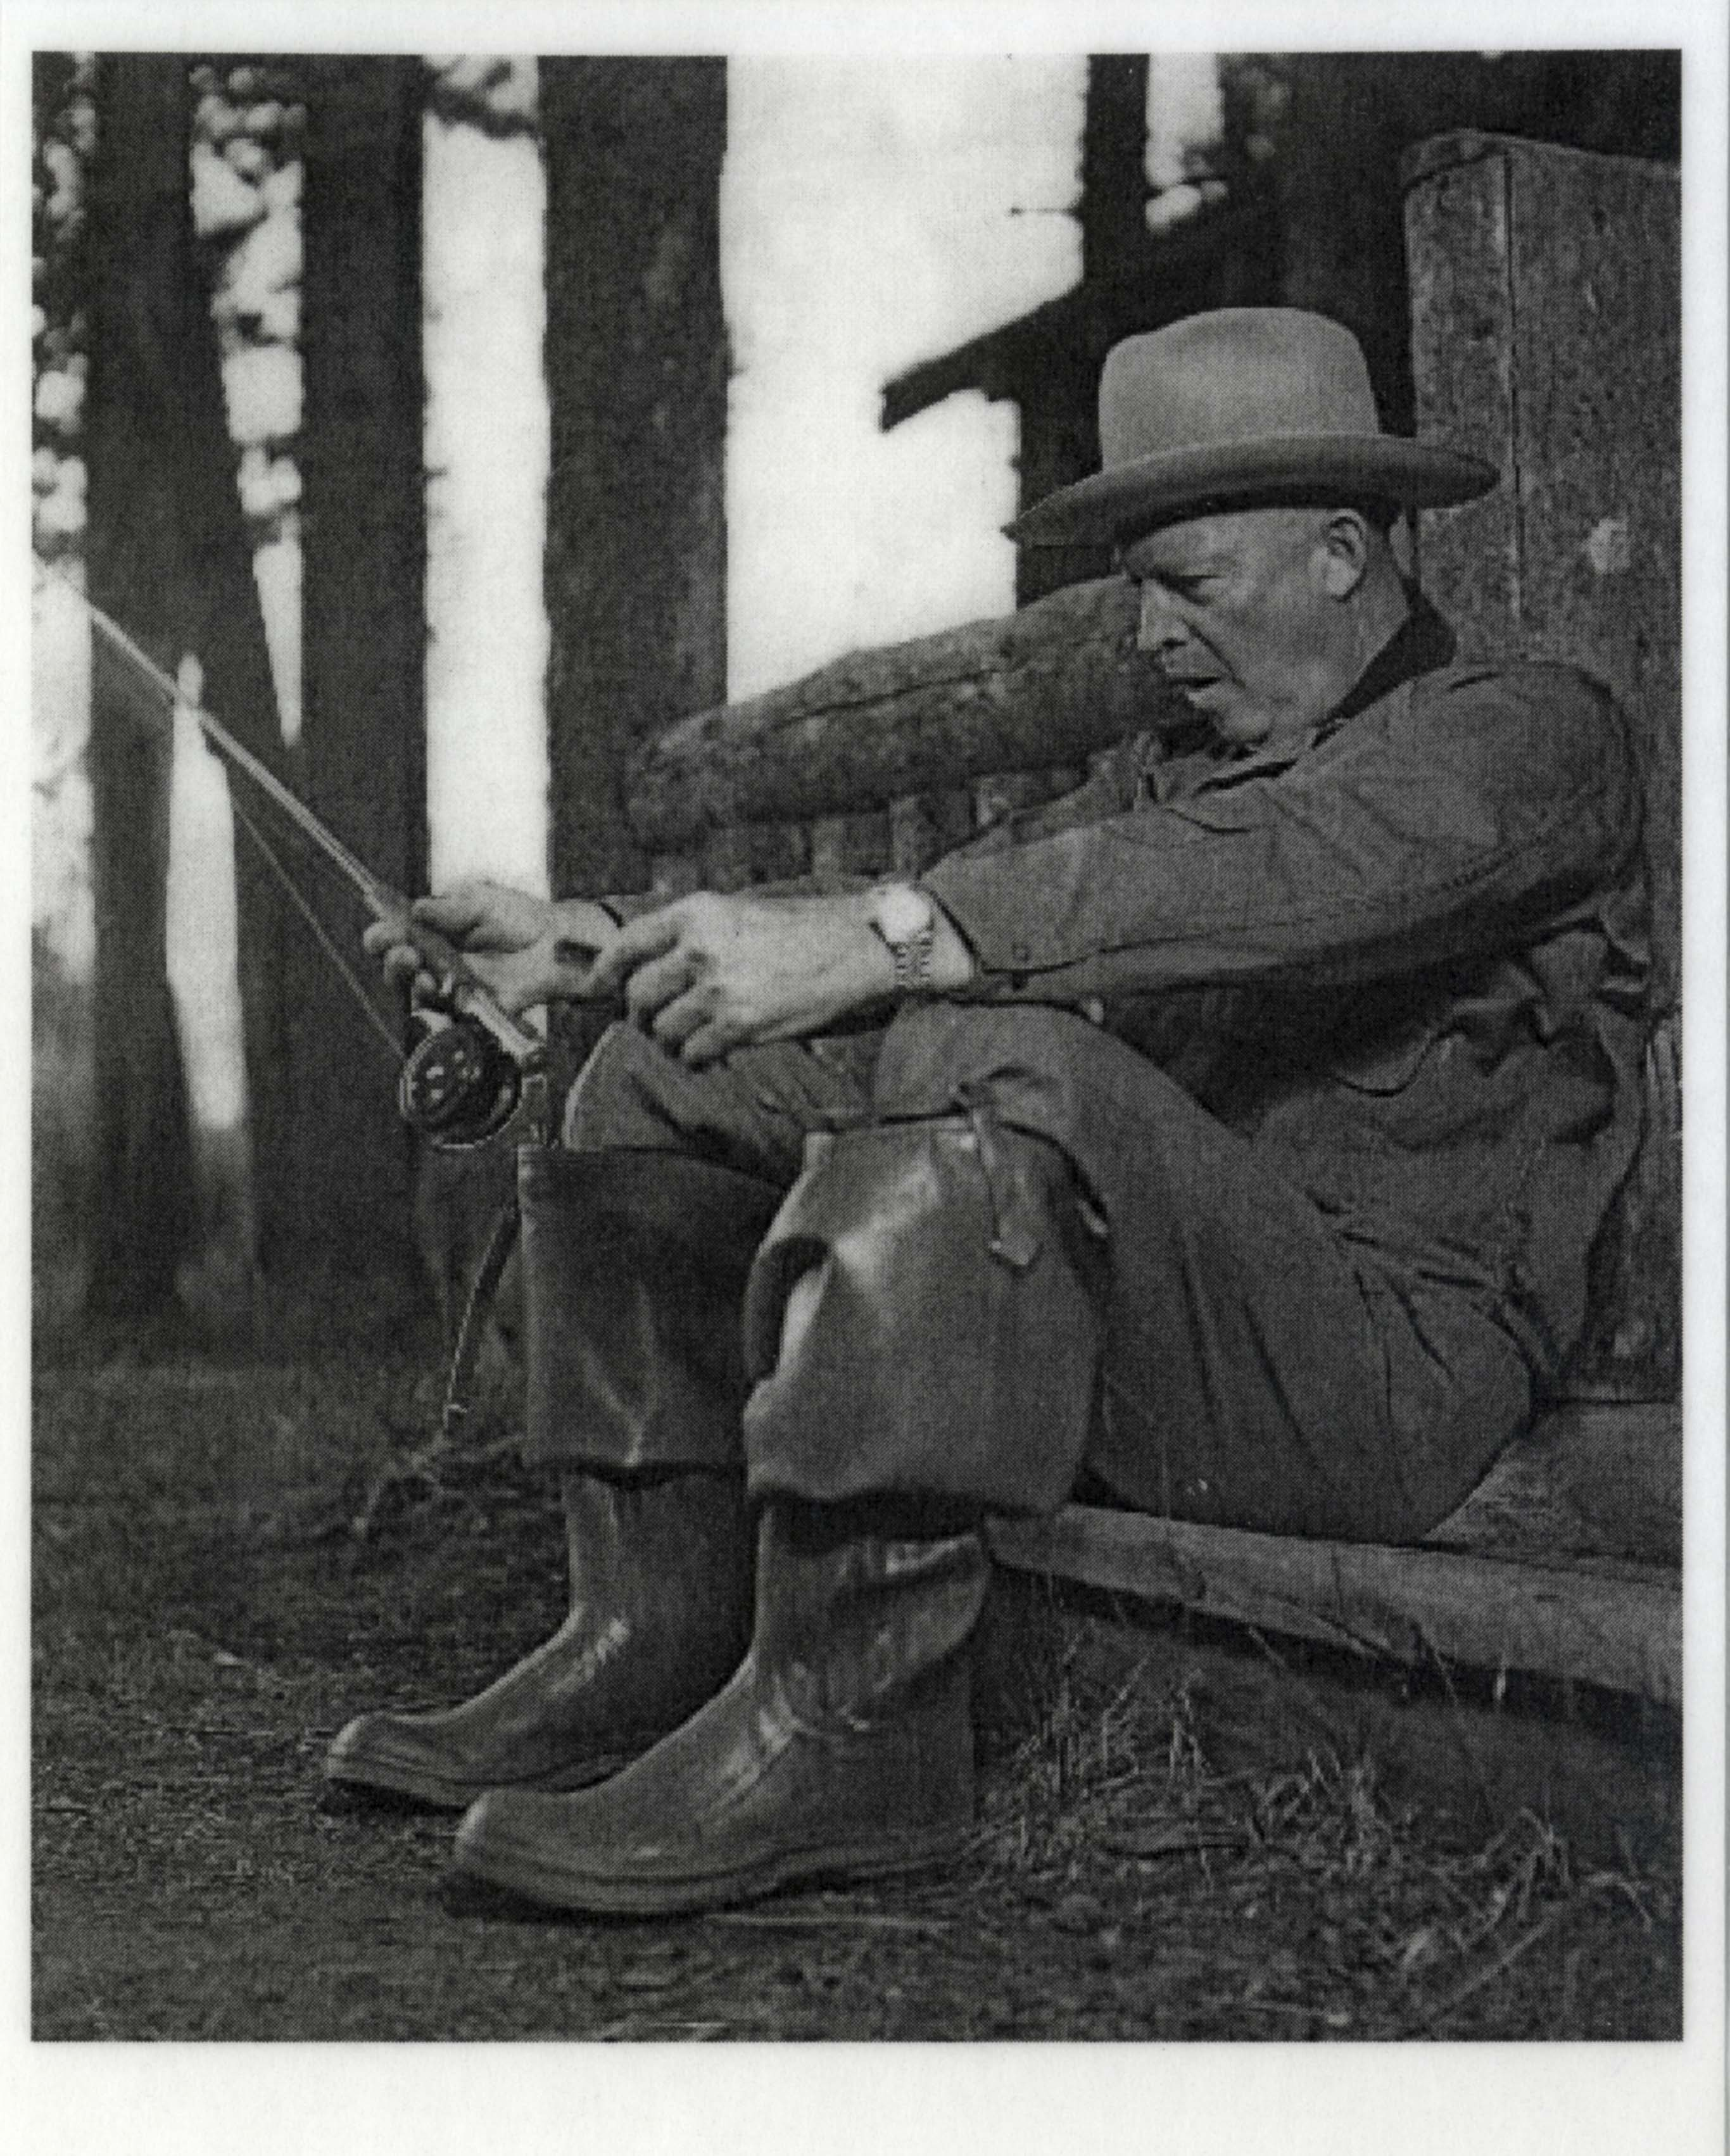 6c6e9e05f3ef7 ... Dwight Eisenhower s Personally Own   Worn Stetson Hat -- Worn by  Eisenhower While Hunting